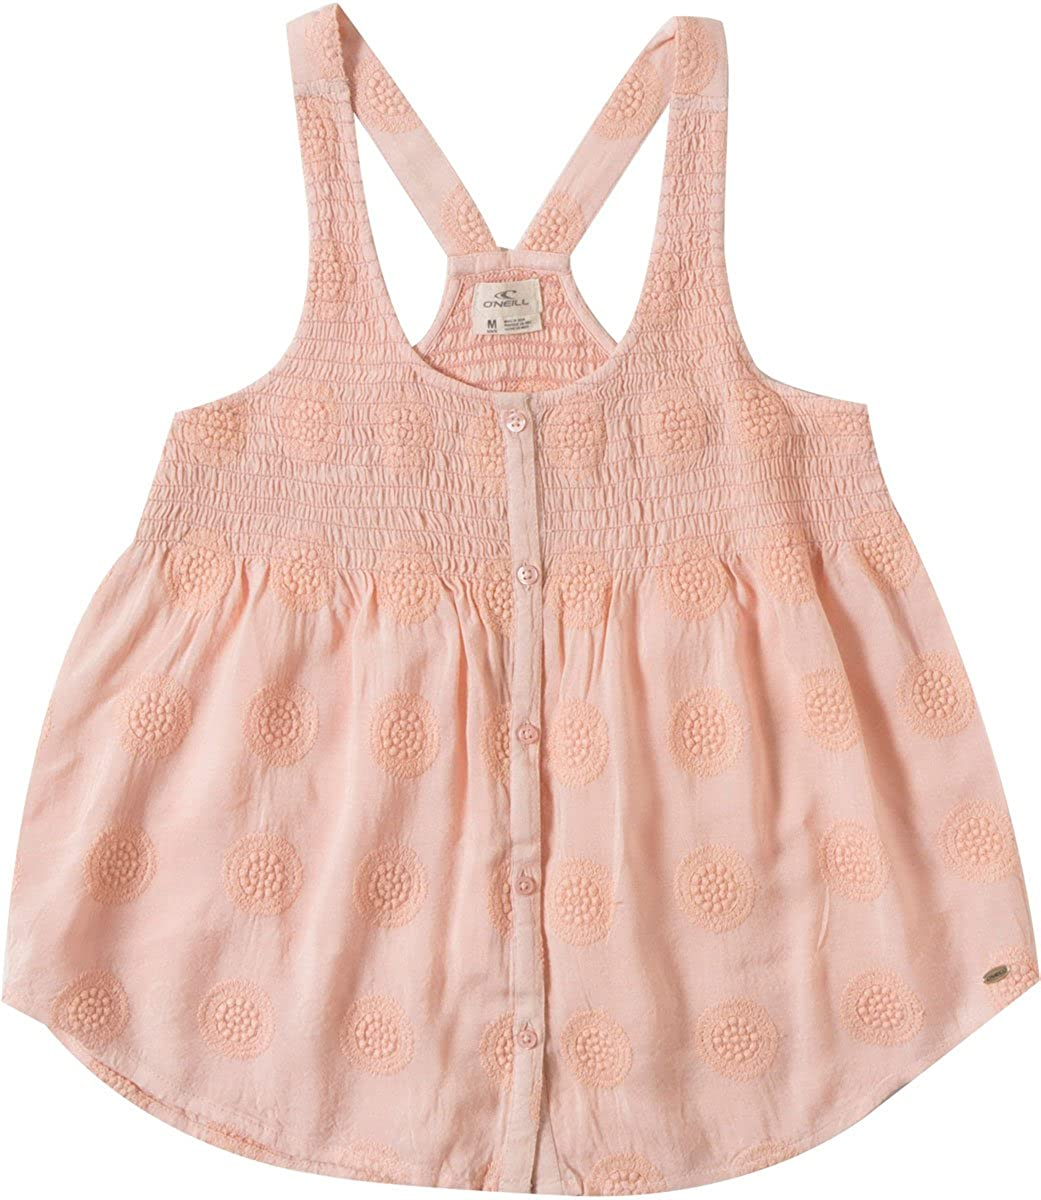 O'Neill Girls Cassy Woven Tank Top, (PNK) Pink, Girls Size Medium (10/12)